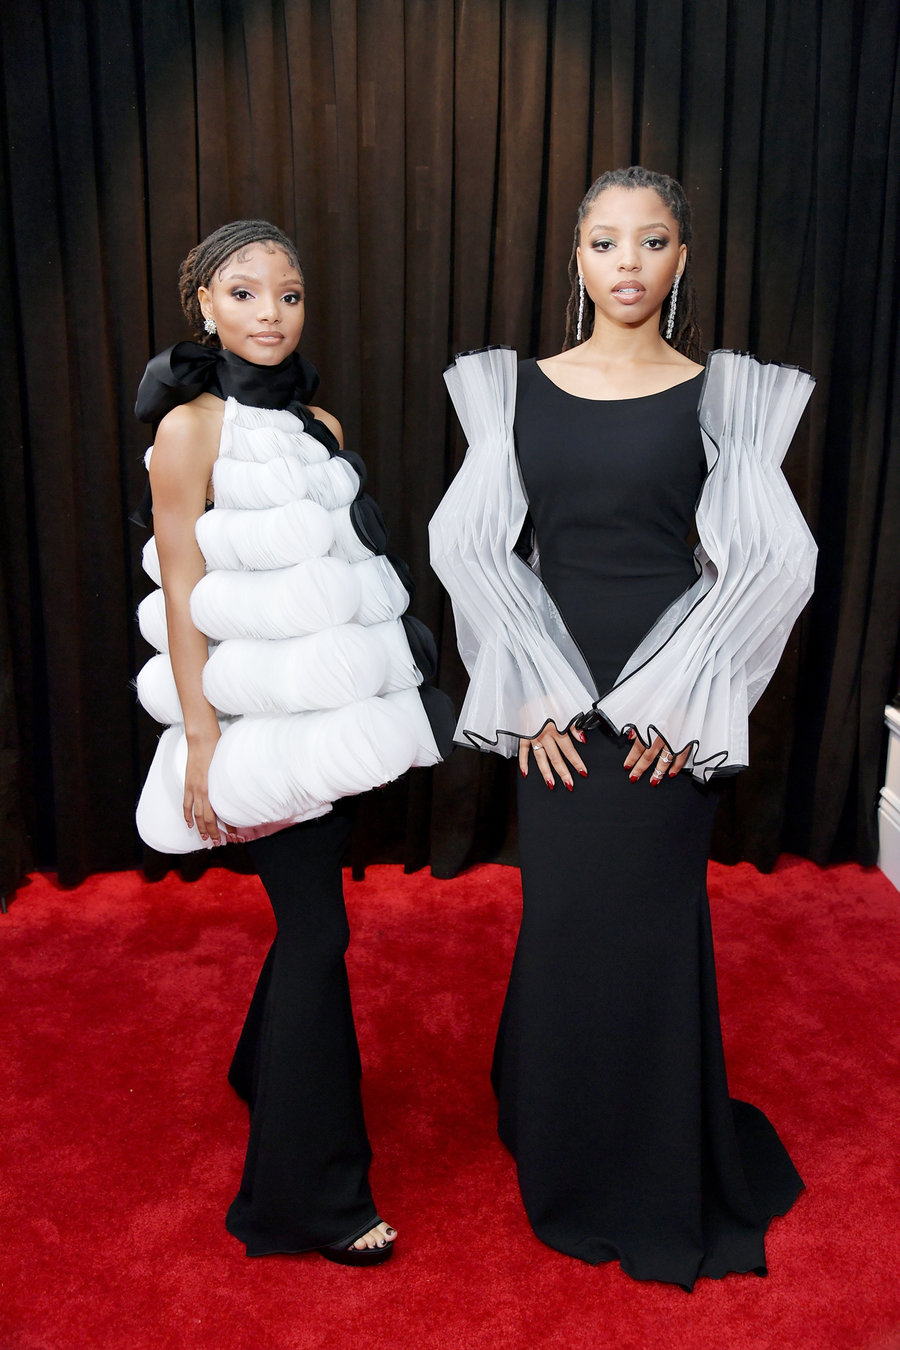 chloe-x-halle-isabel sanchis